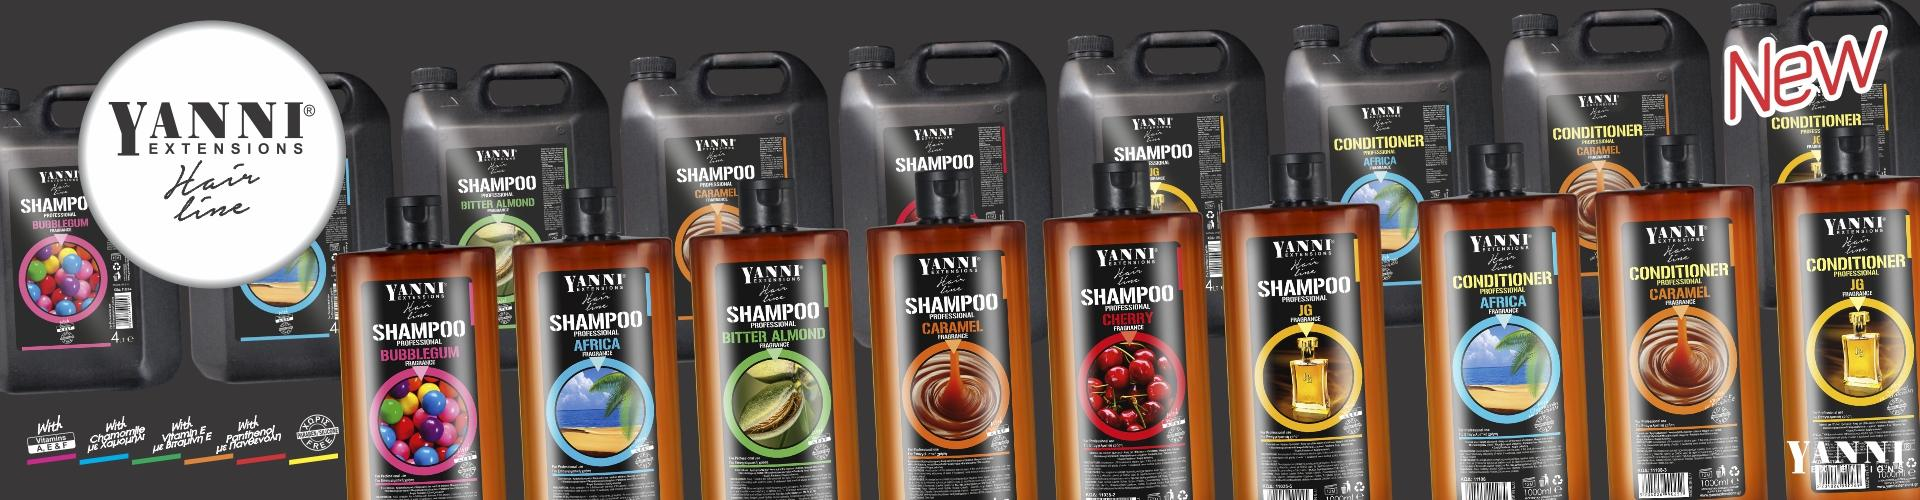 BANNER-SHAMPOO-CONDITIONER-logo-yanni